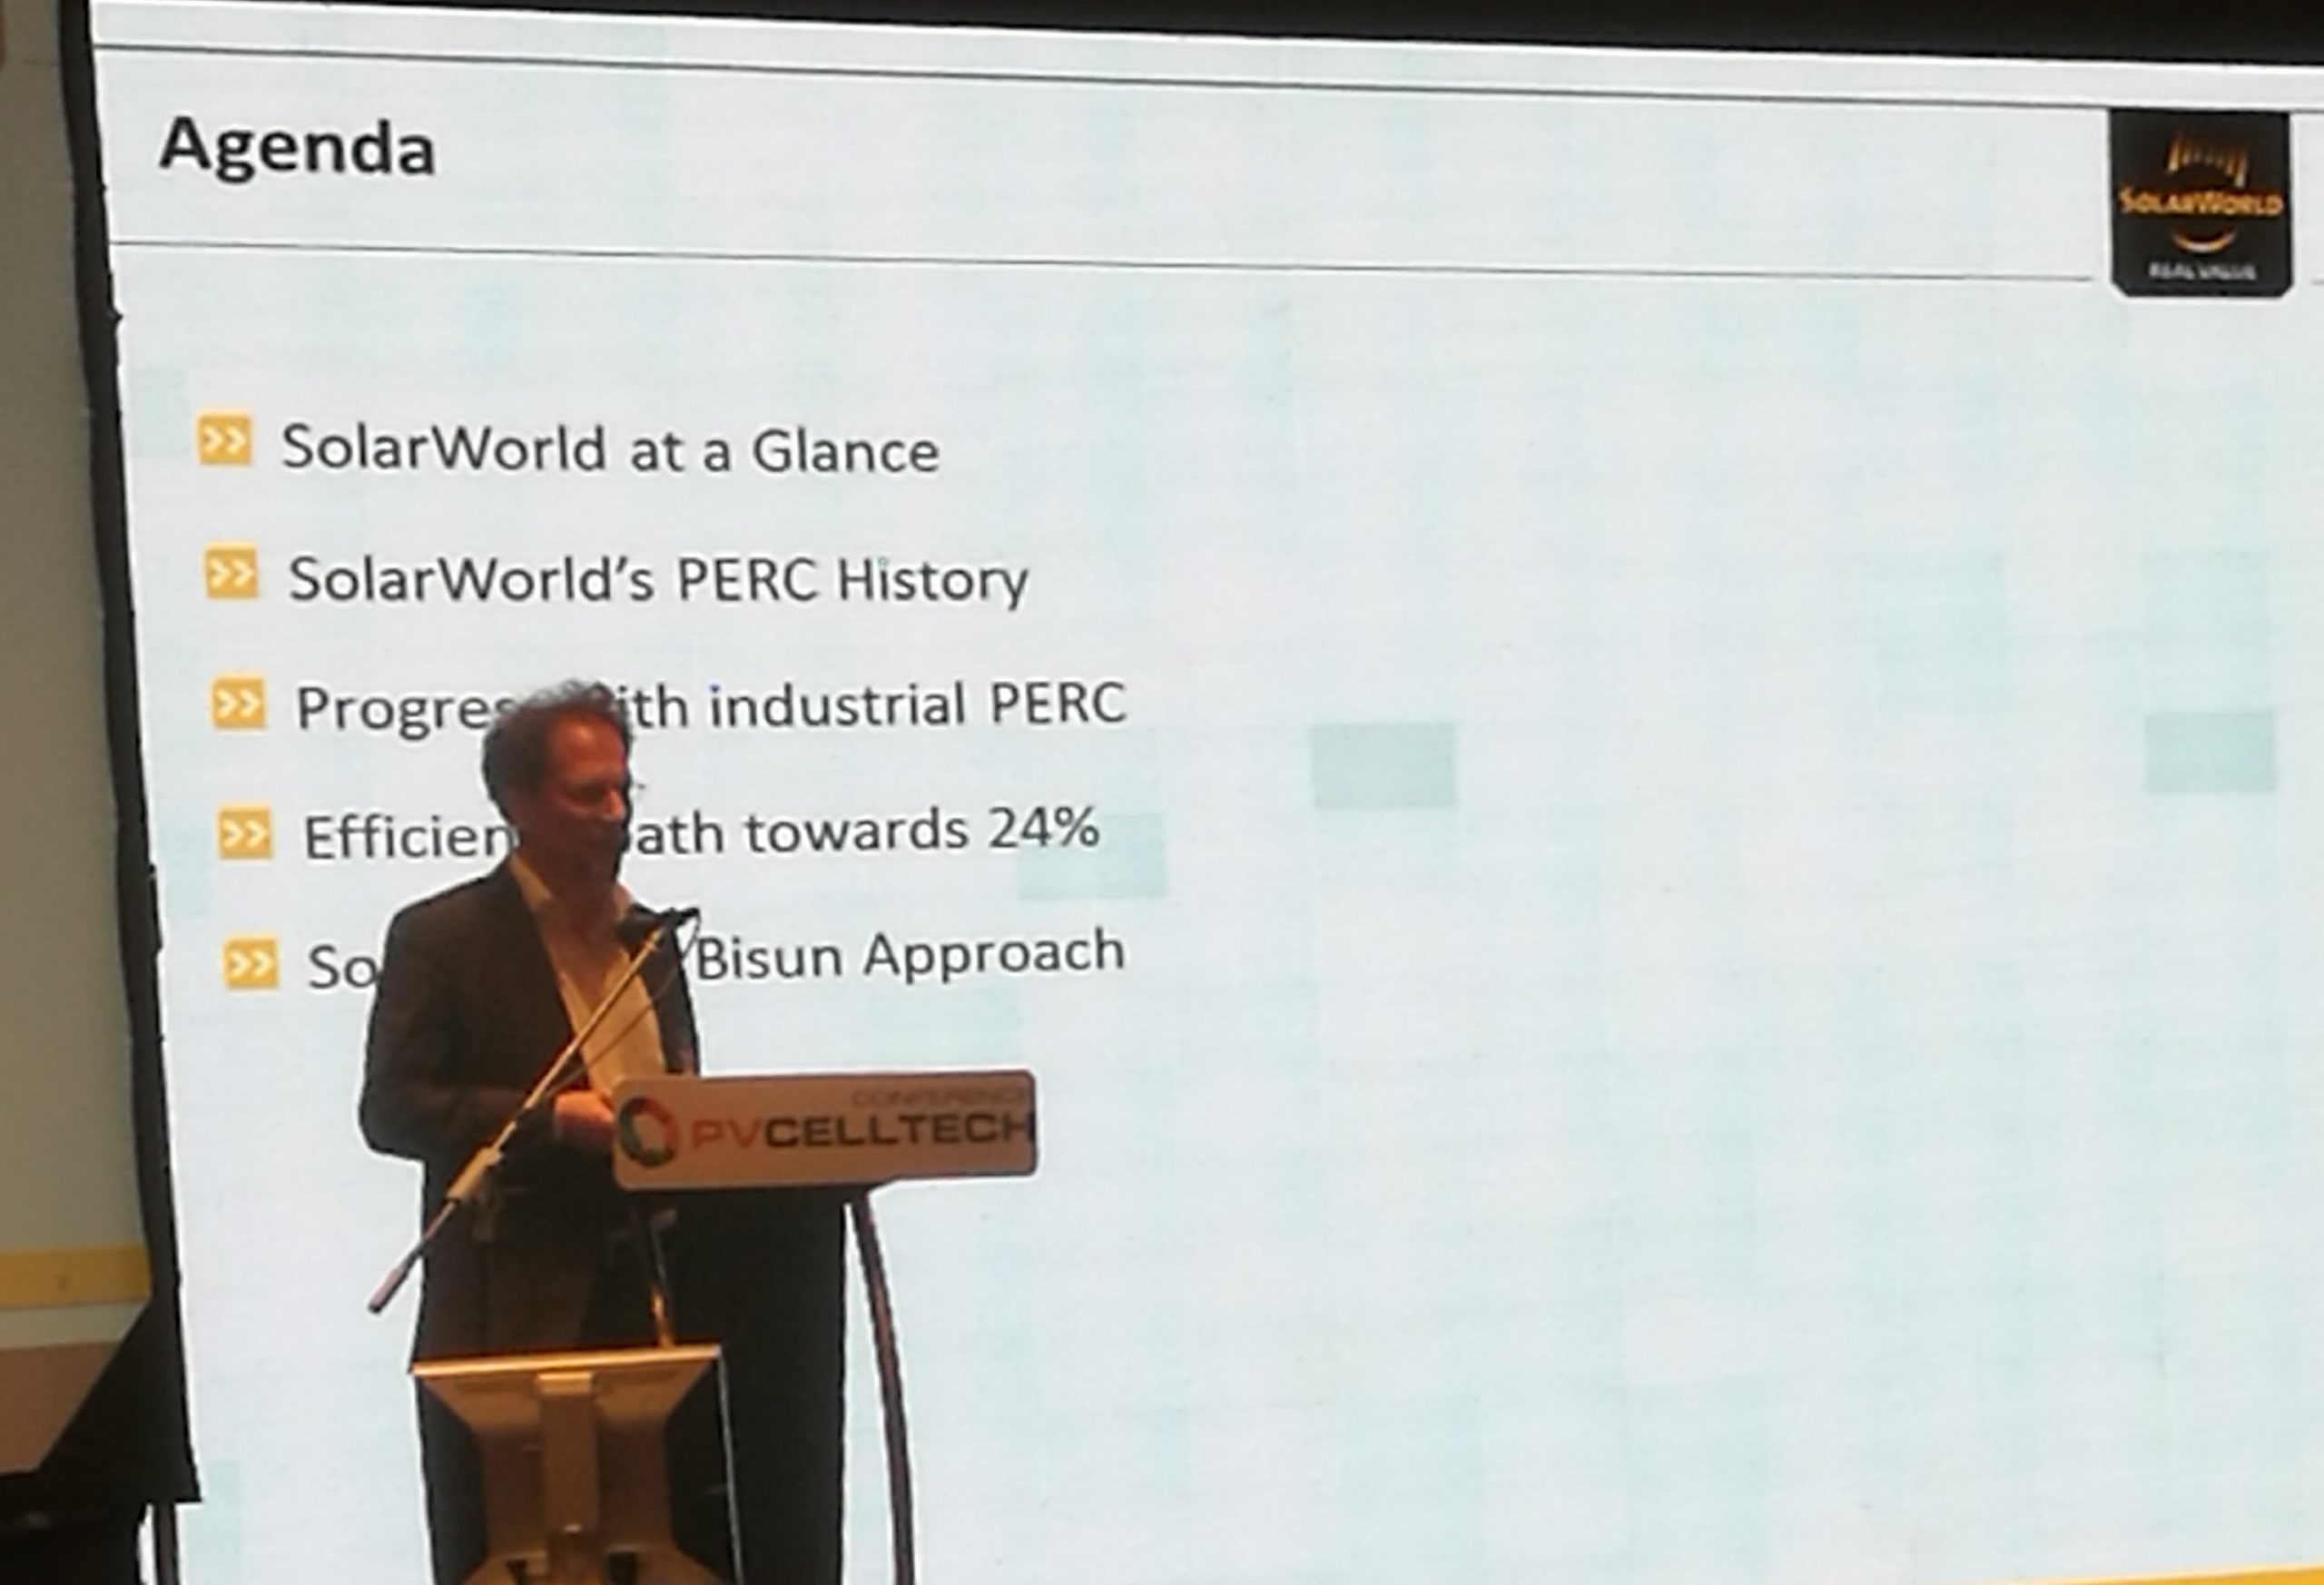 One of the most interesting talks at PV CellTech 2017 came from Holger Neuhaus from SolarWorld, in particular the company's work on commercializing bifacial cells.